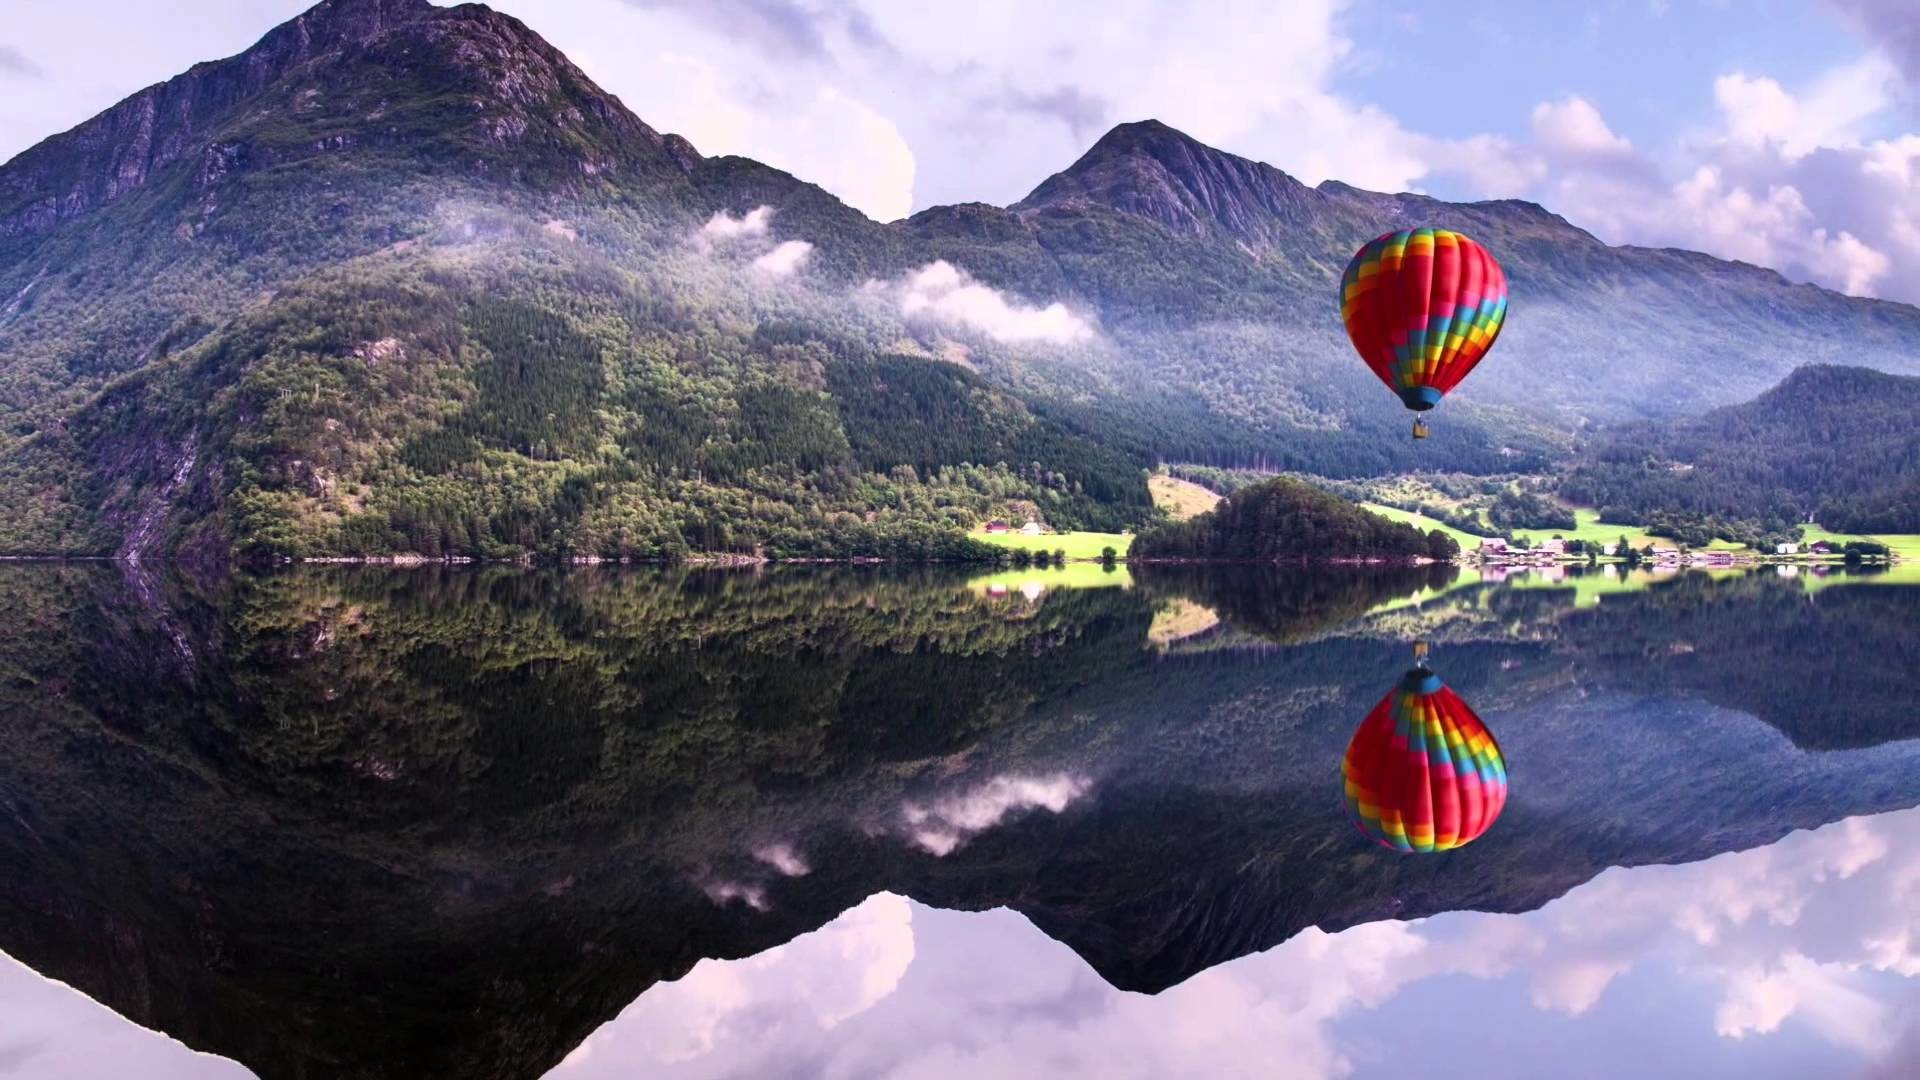 1920x1080 4K ULTRA HD Baloon, Lake, Mountains